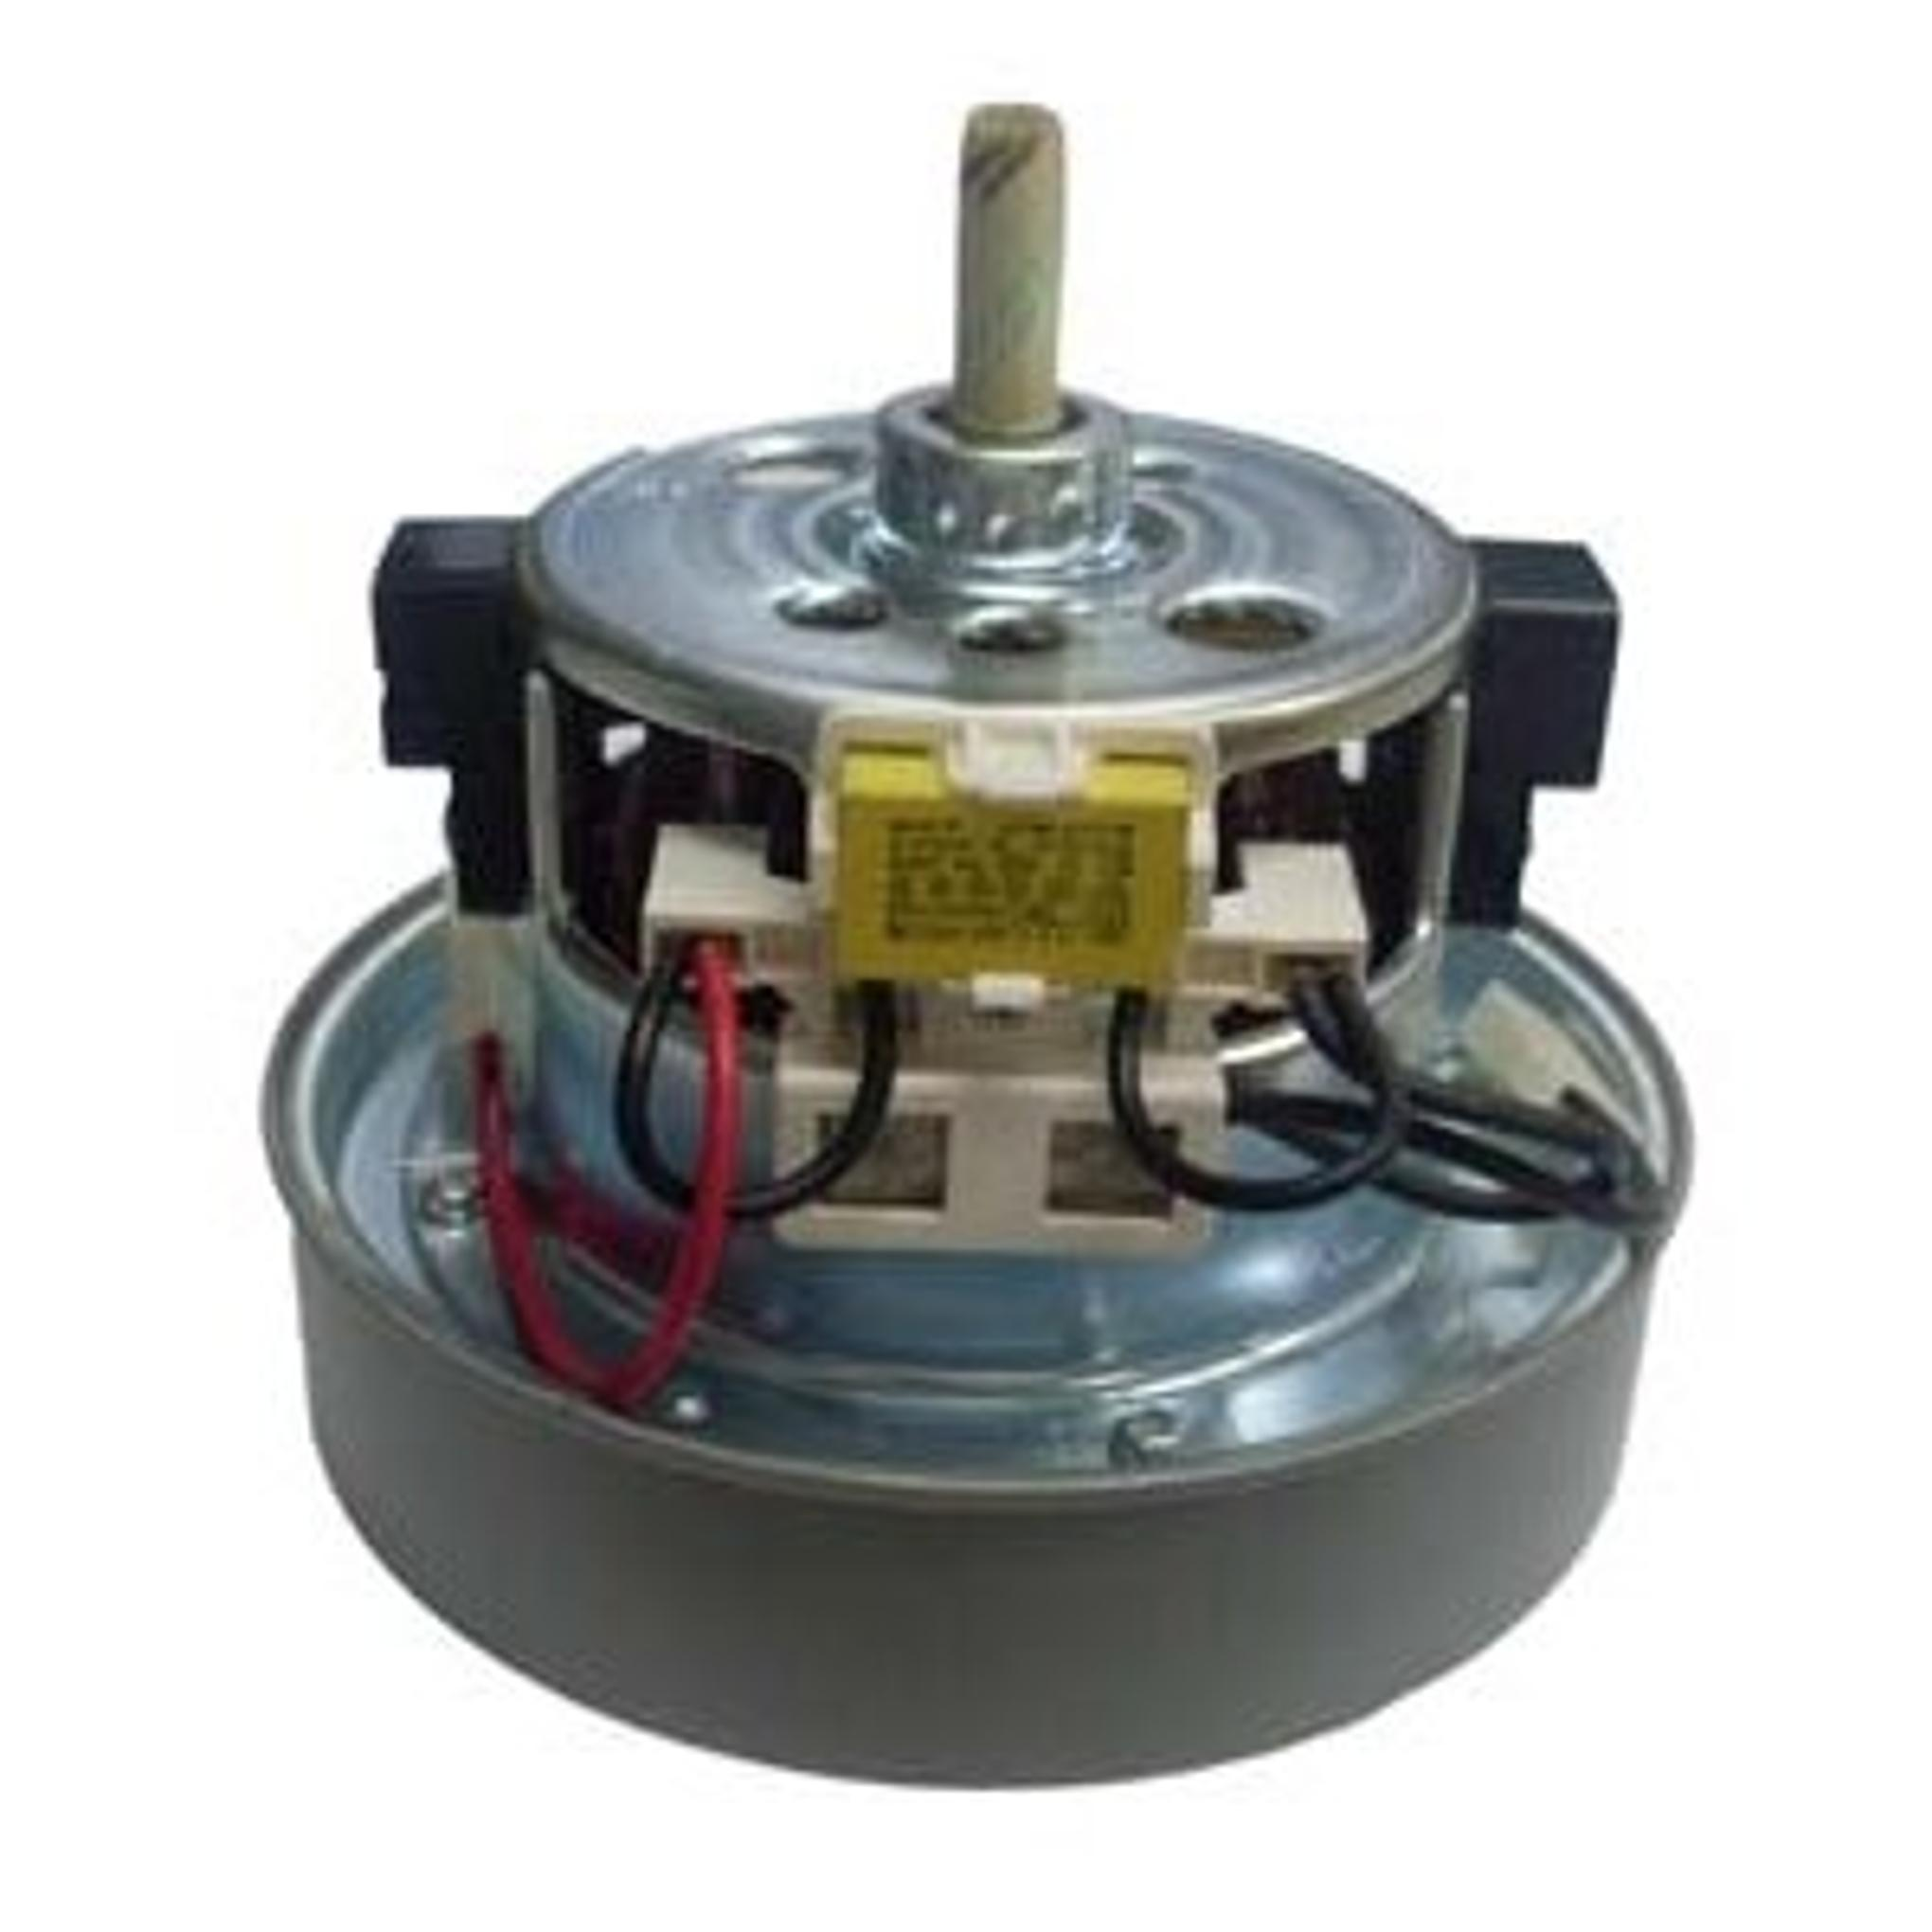 Vacuum Motor to suit Dyson DC02, DC04, DC05, DC07, DC08, DC14 and some  current small vacuums